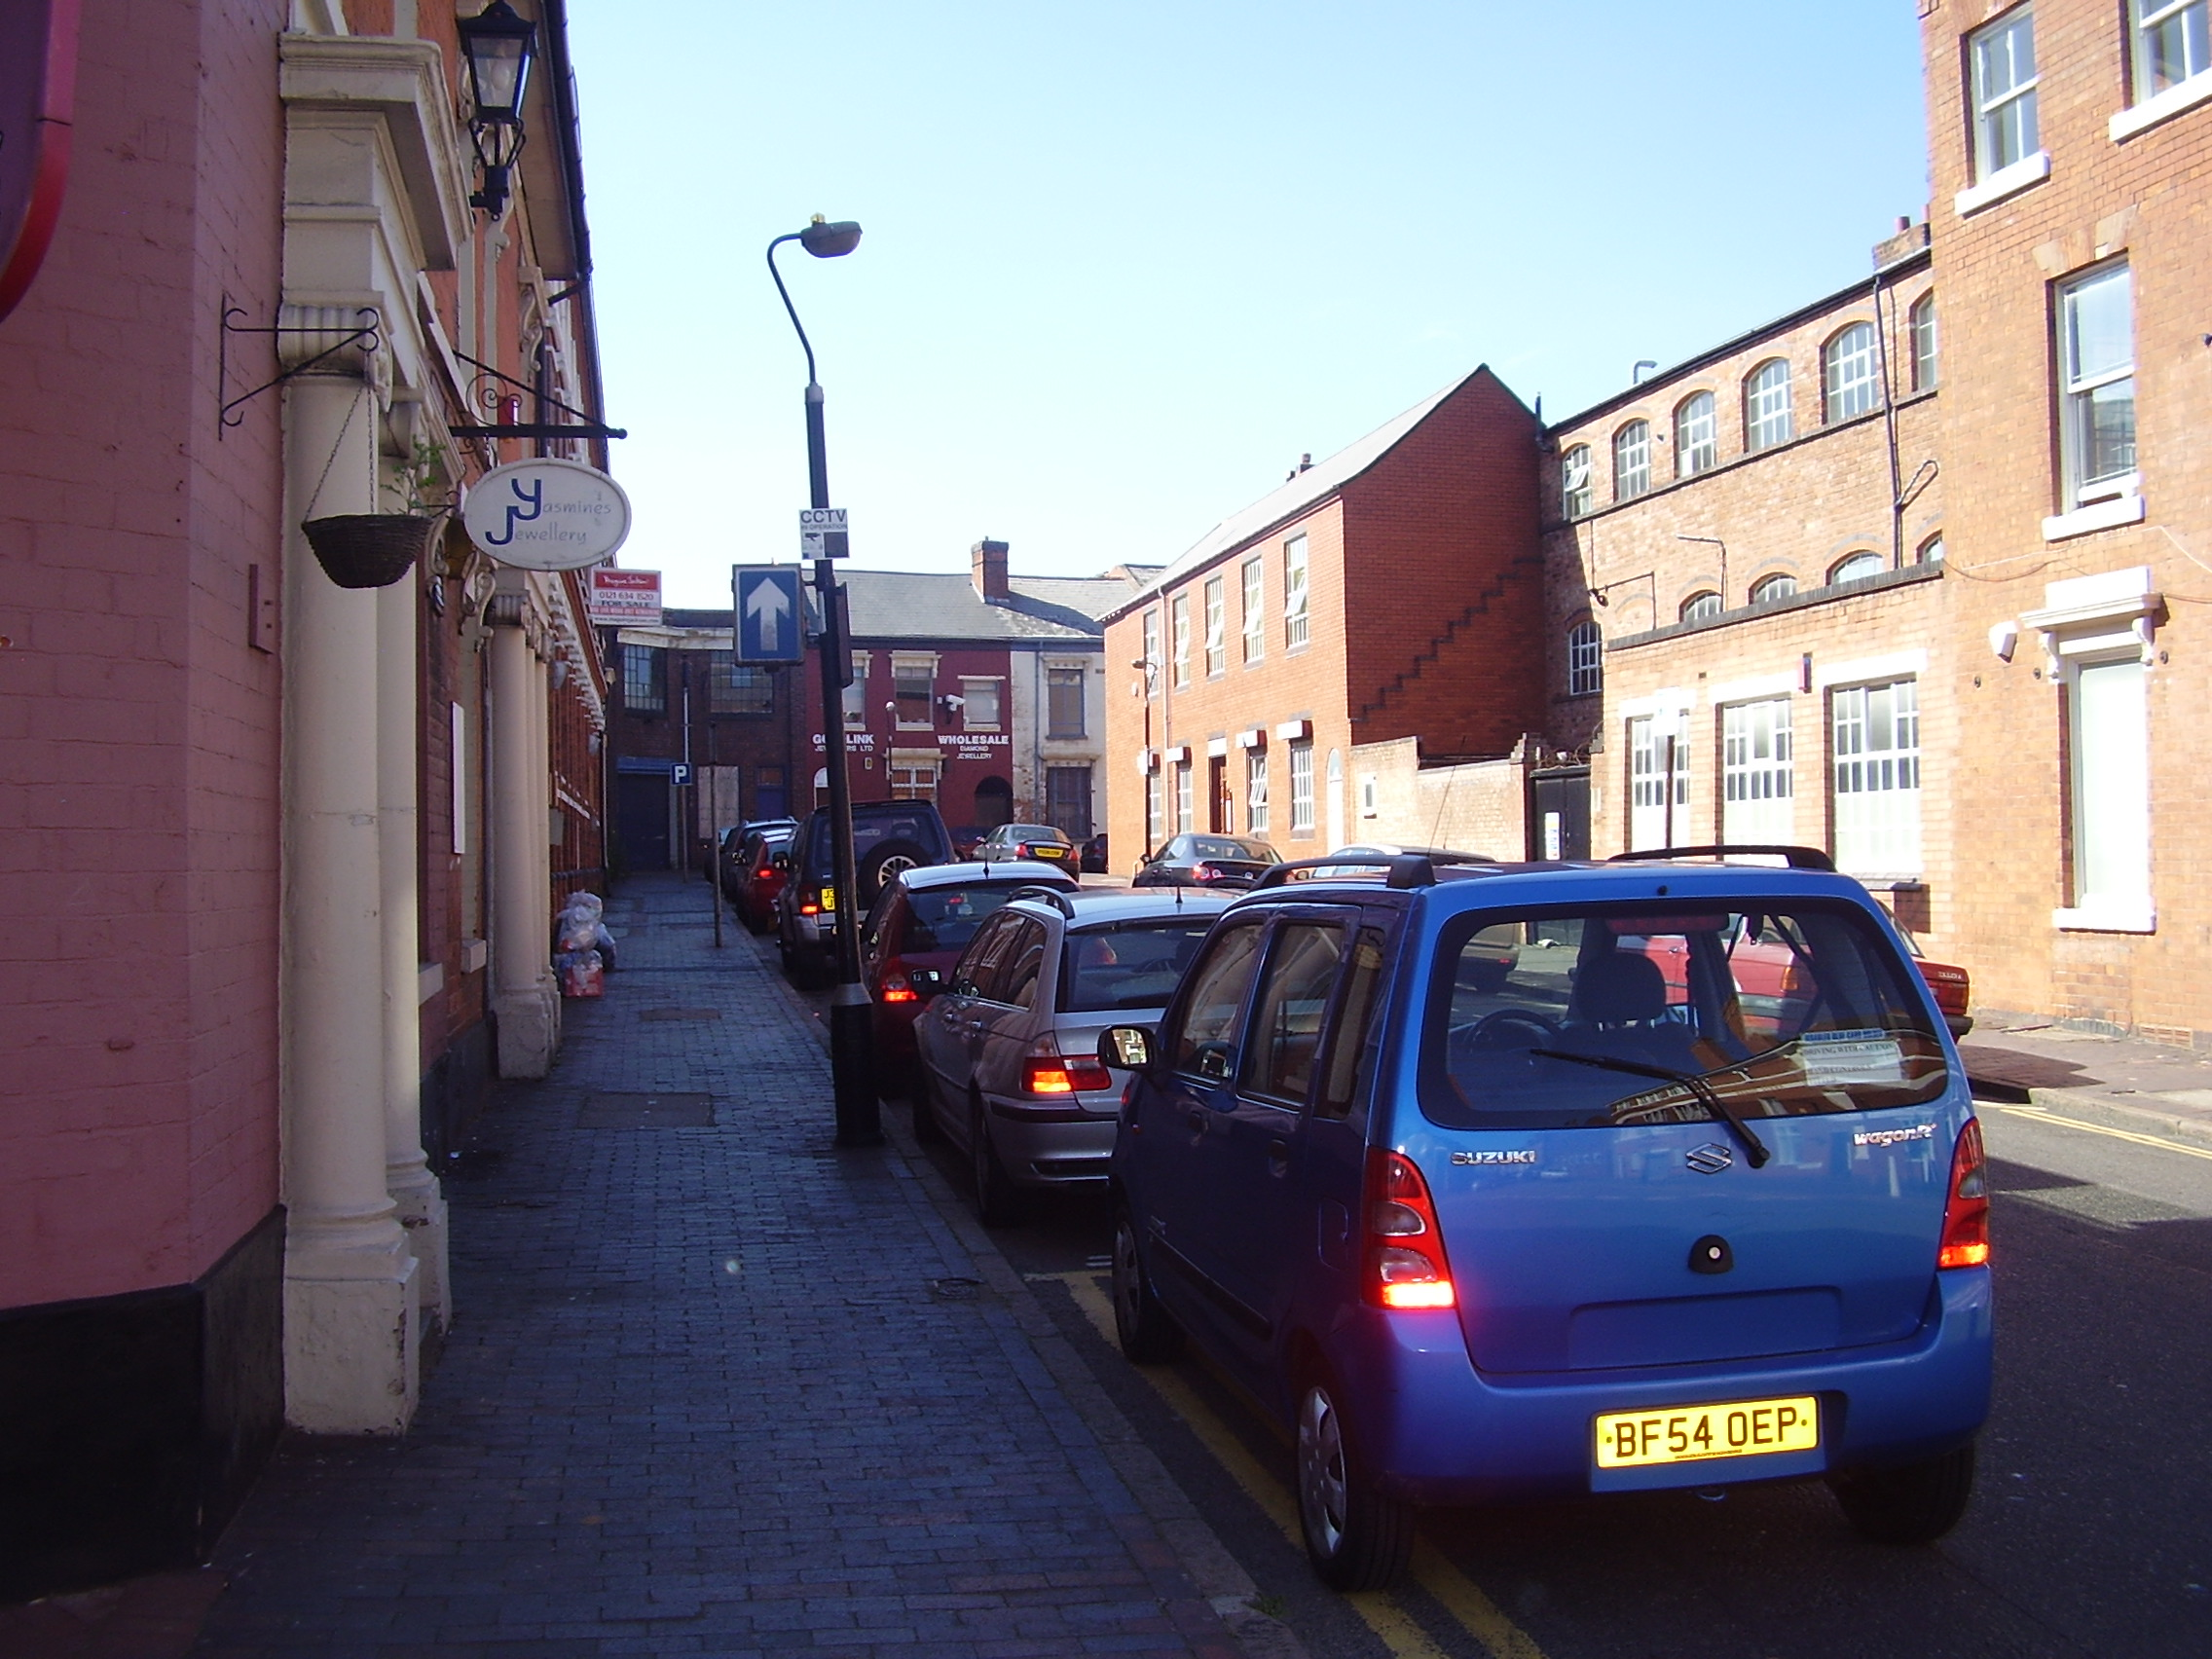 Jewellery Shops in Vyse Street 2008